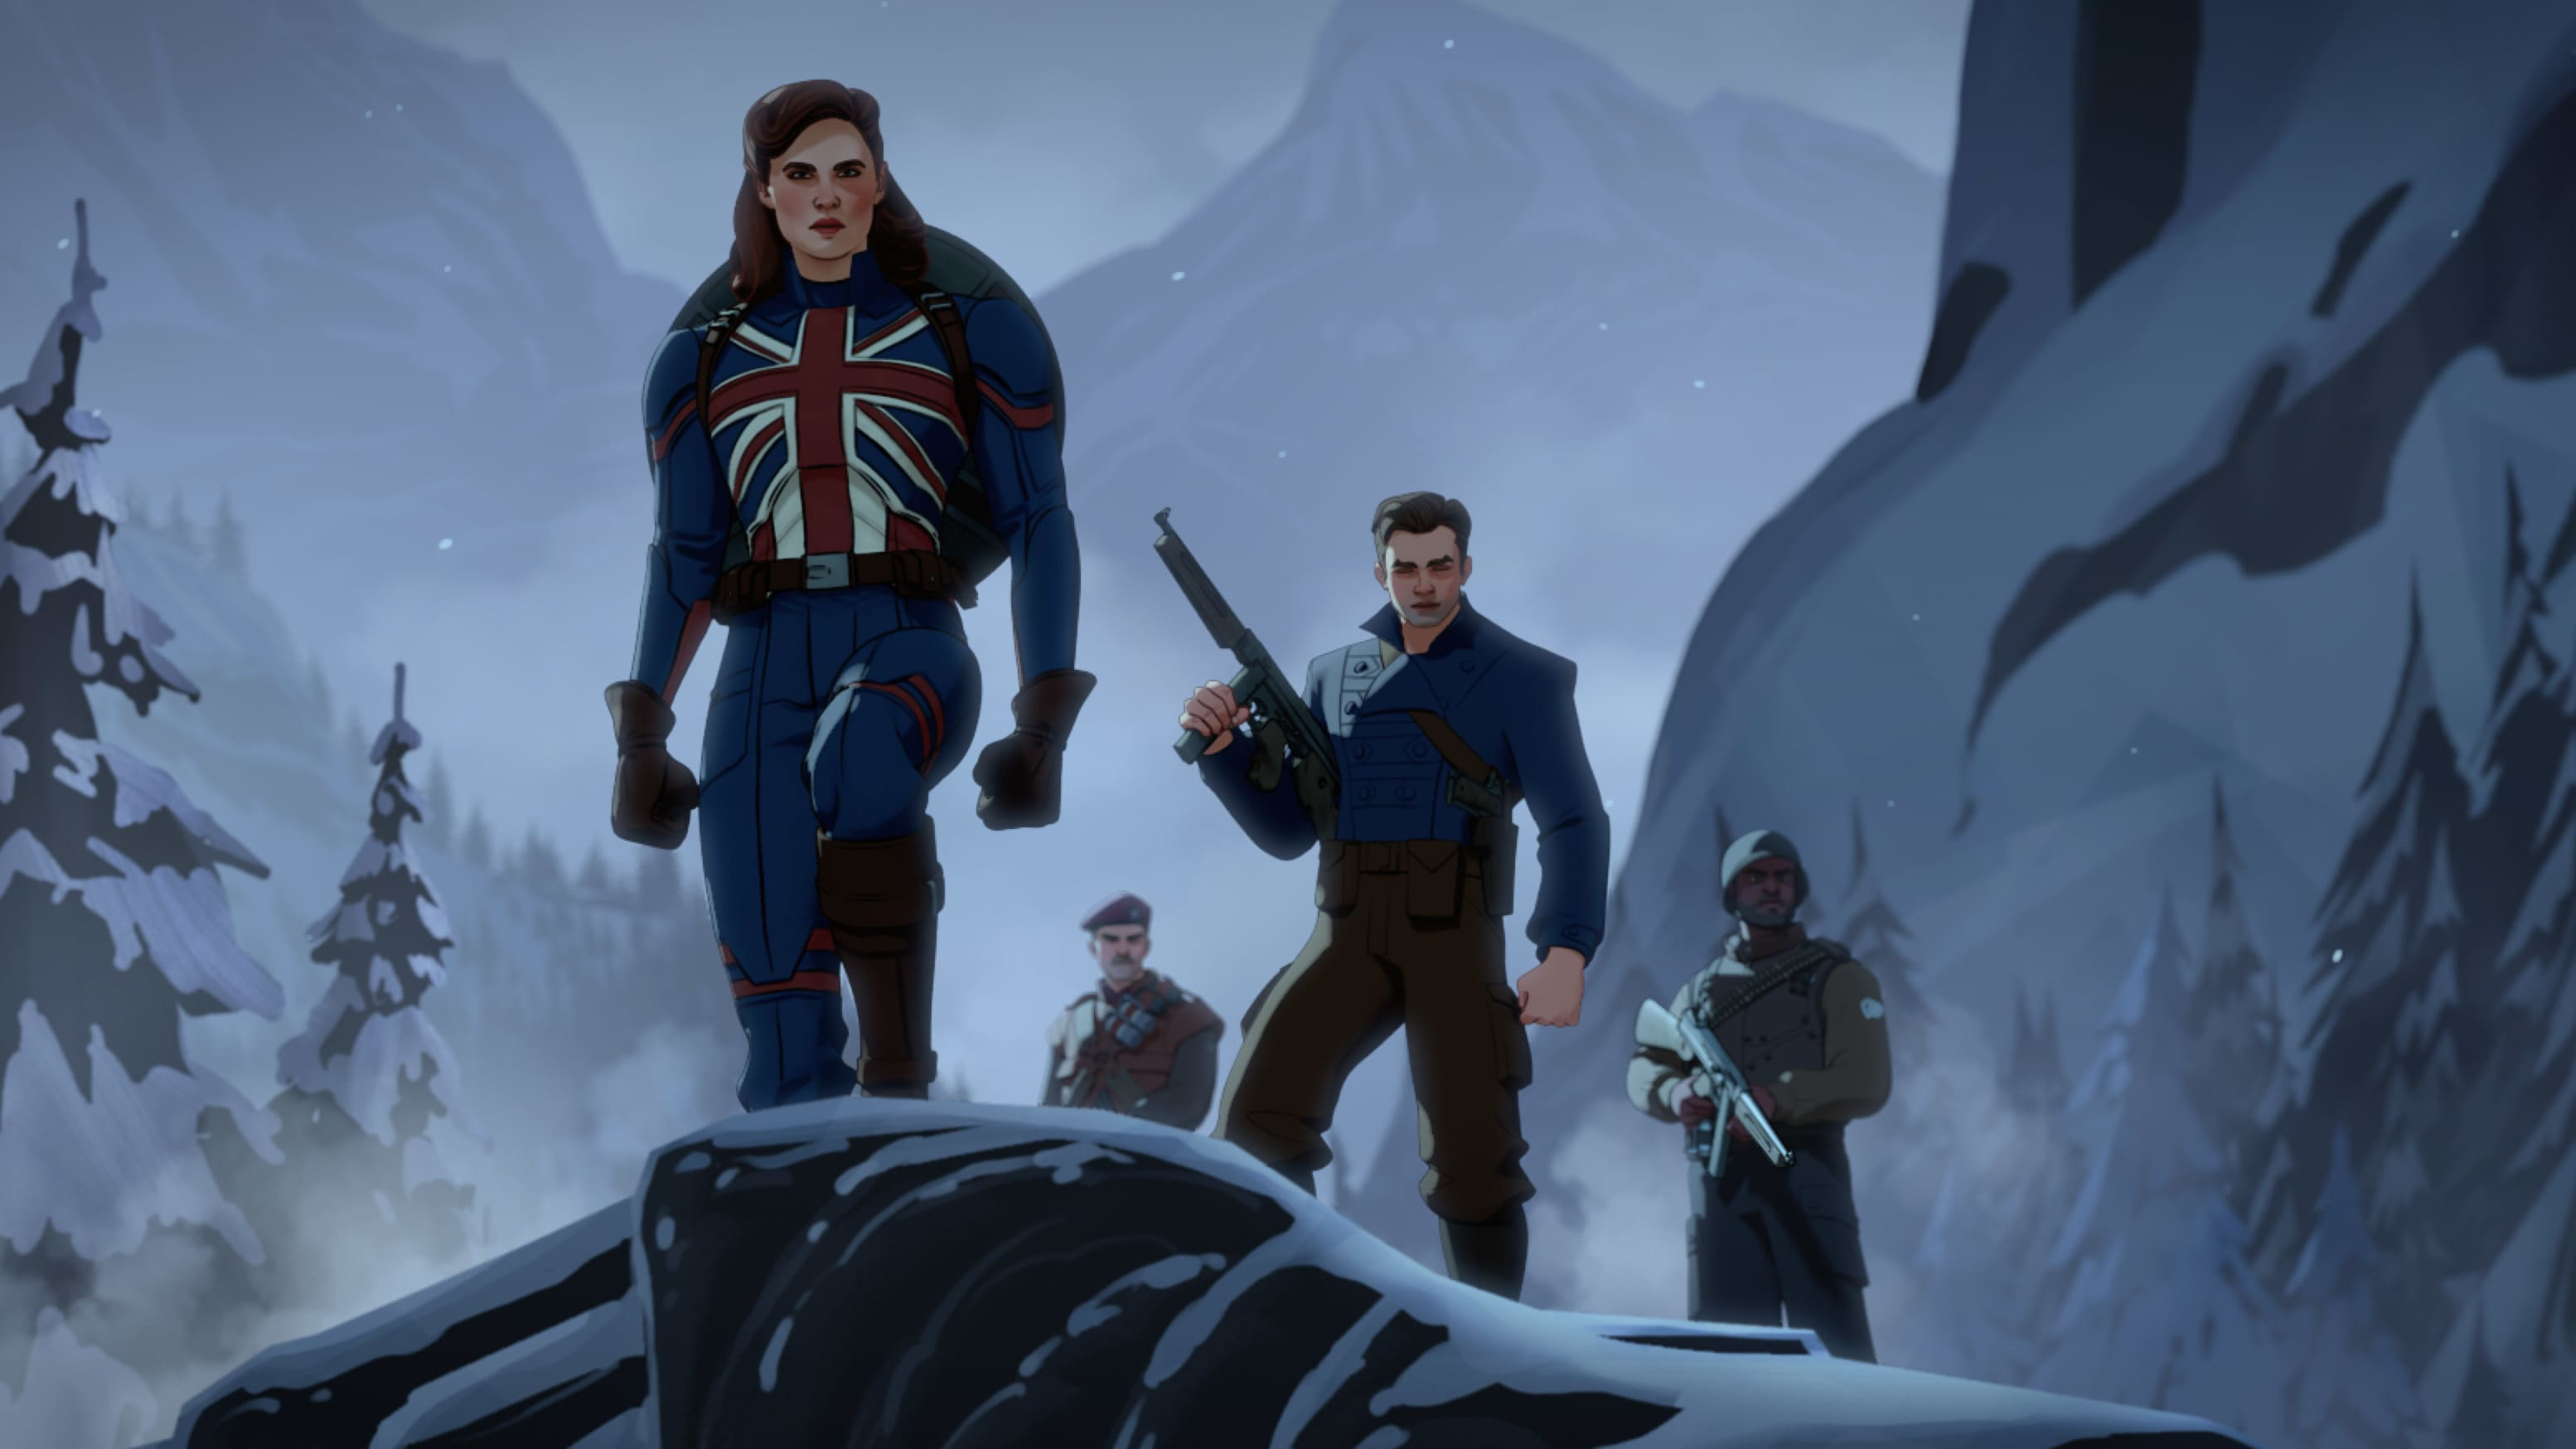 (Counterclockwise from left): Captain Carter/Peggy Carter, Bucky Barnes and the Howling Commandos in Marvel Studios' WHAT IF…? exclusively on Disney+. ©Marvel Studios 2021. All Rights Reserved.